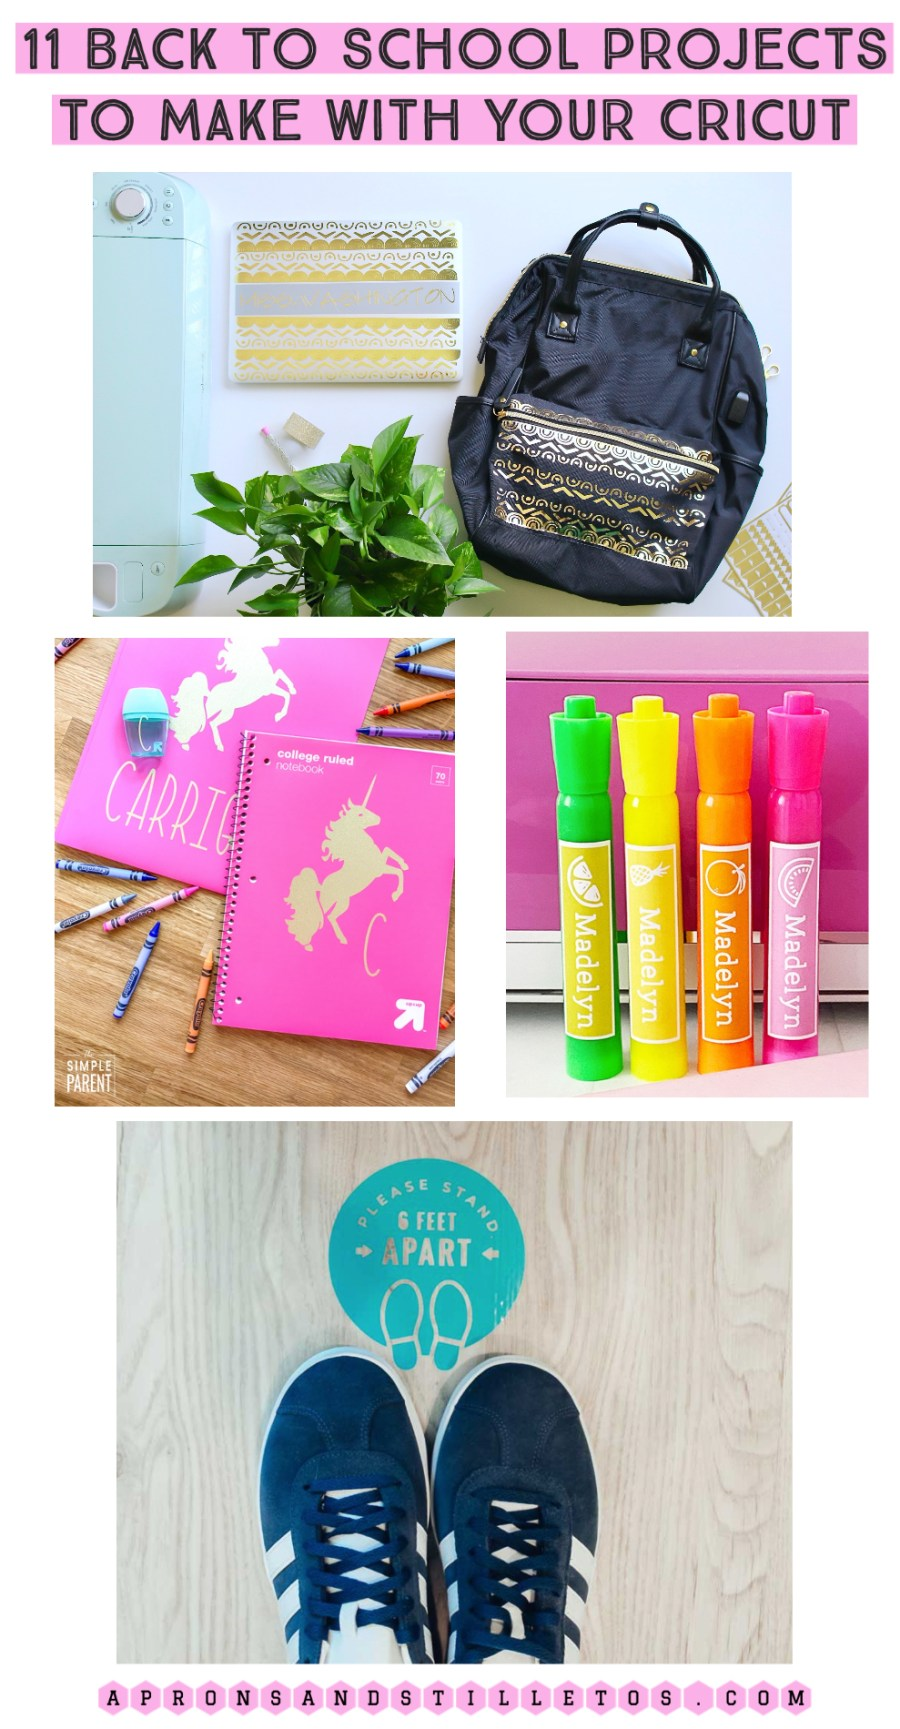 11 Back to School Projects to Make With Your Cricut